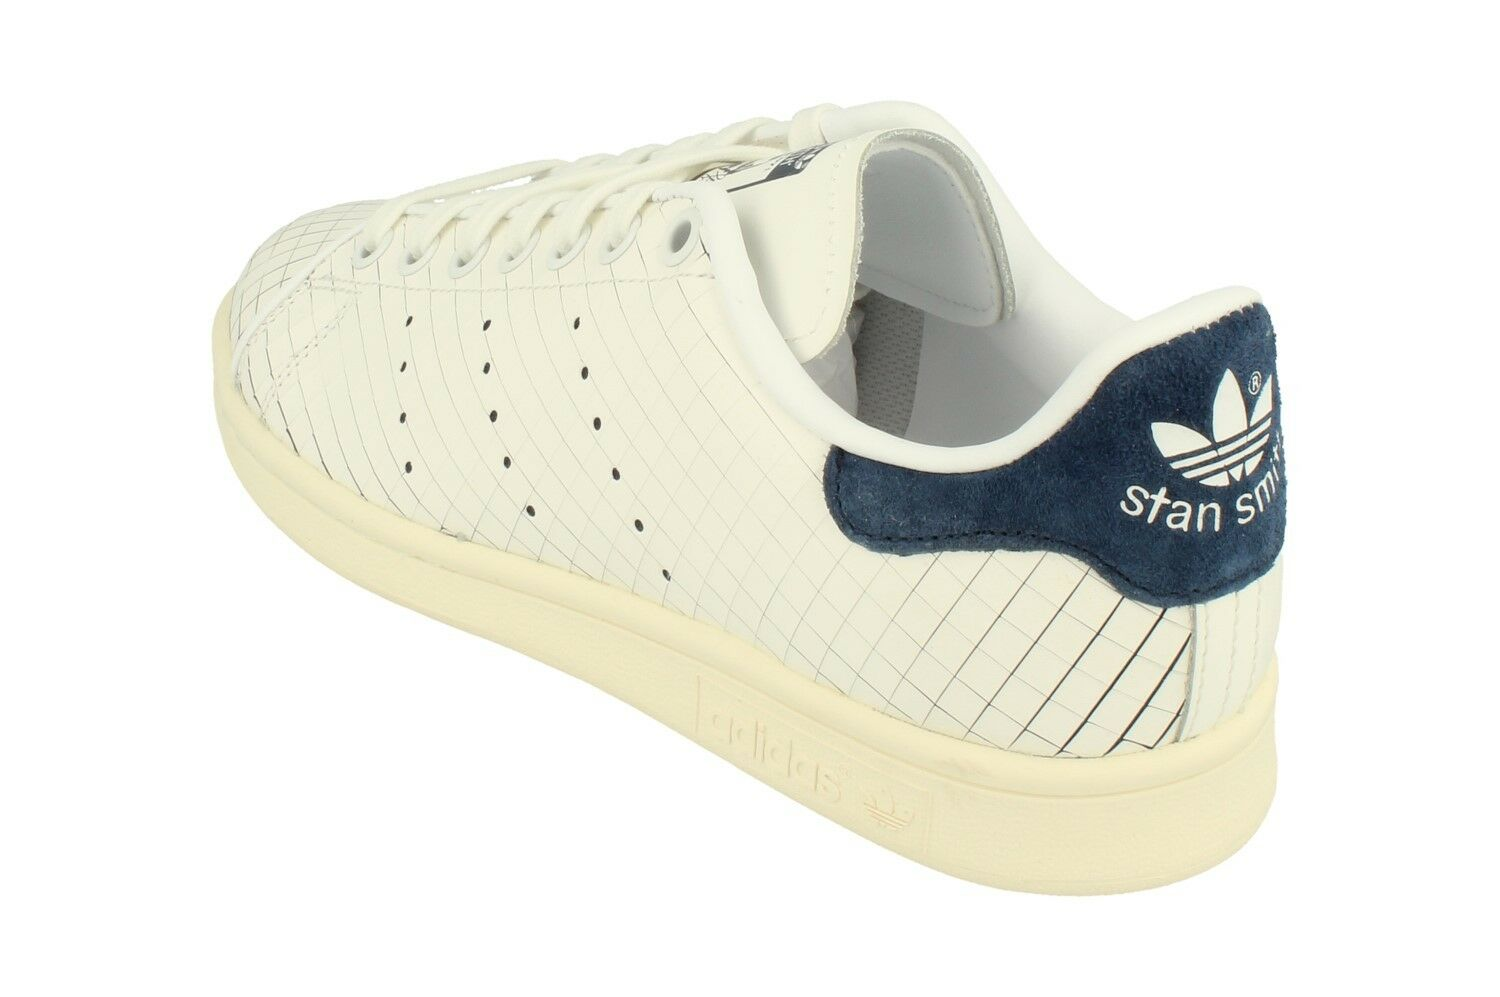 reputable site 462c7 ba342 ... Adidas Originals Originals Originals Stan Smith Mujer Trainers zapatos  especiales de tiempo limitado s32259 ebc2f7 ...